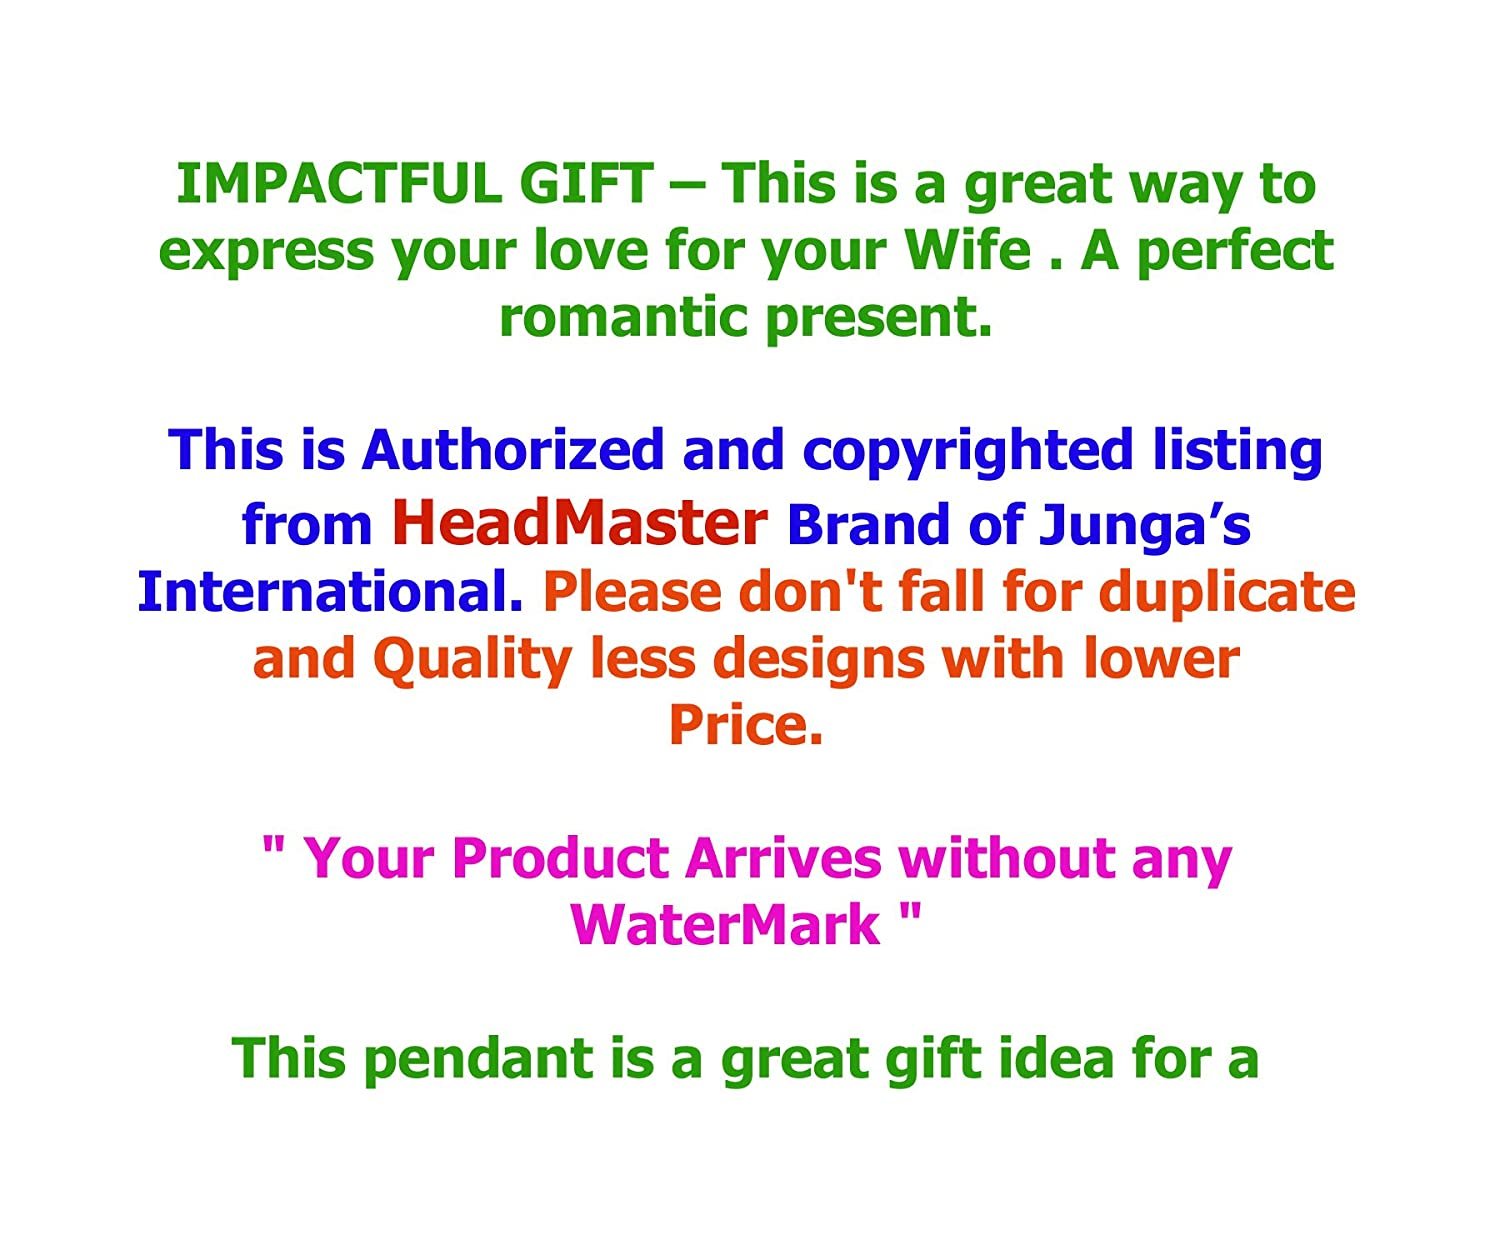 Amazon.com : wife gifts pendant necklace - To my wife without you ...